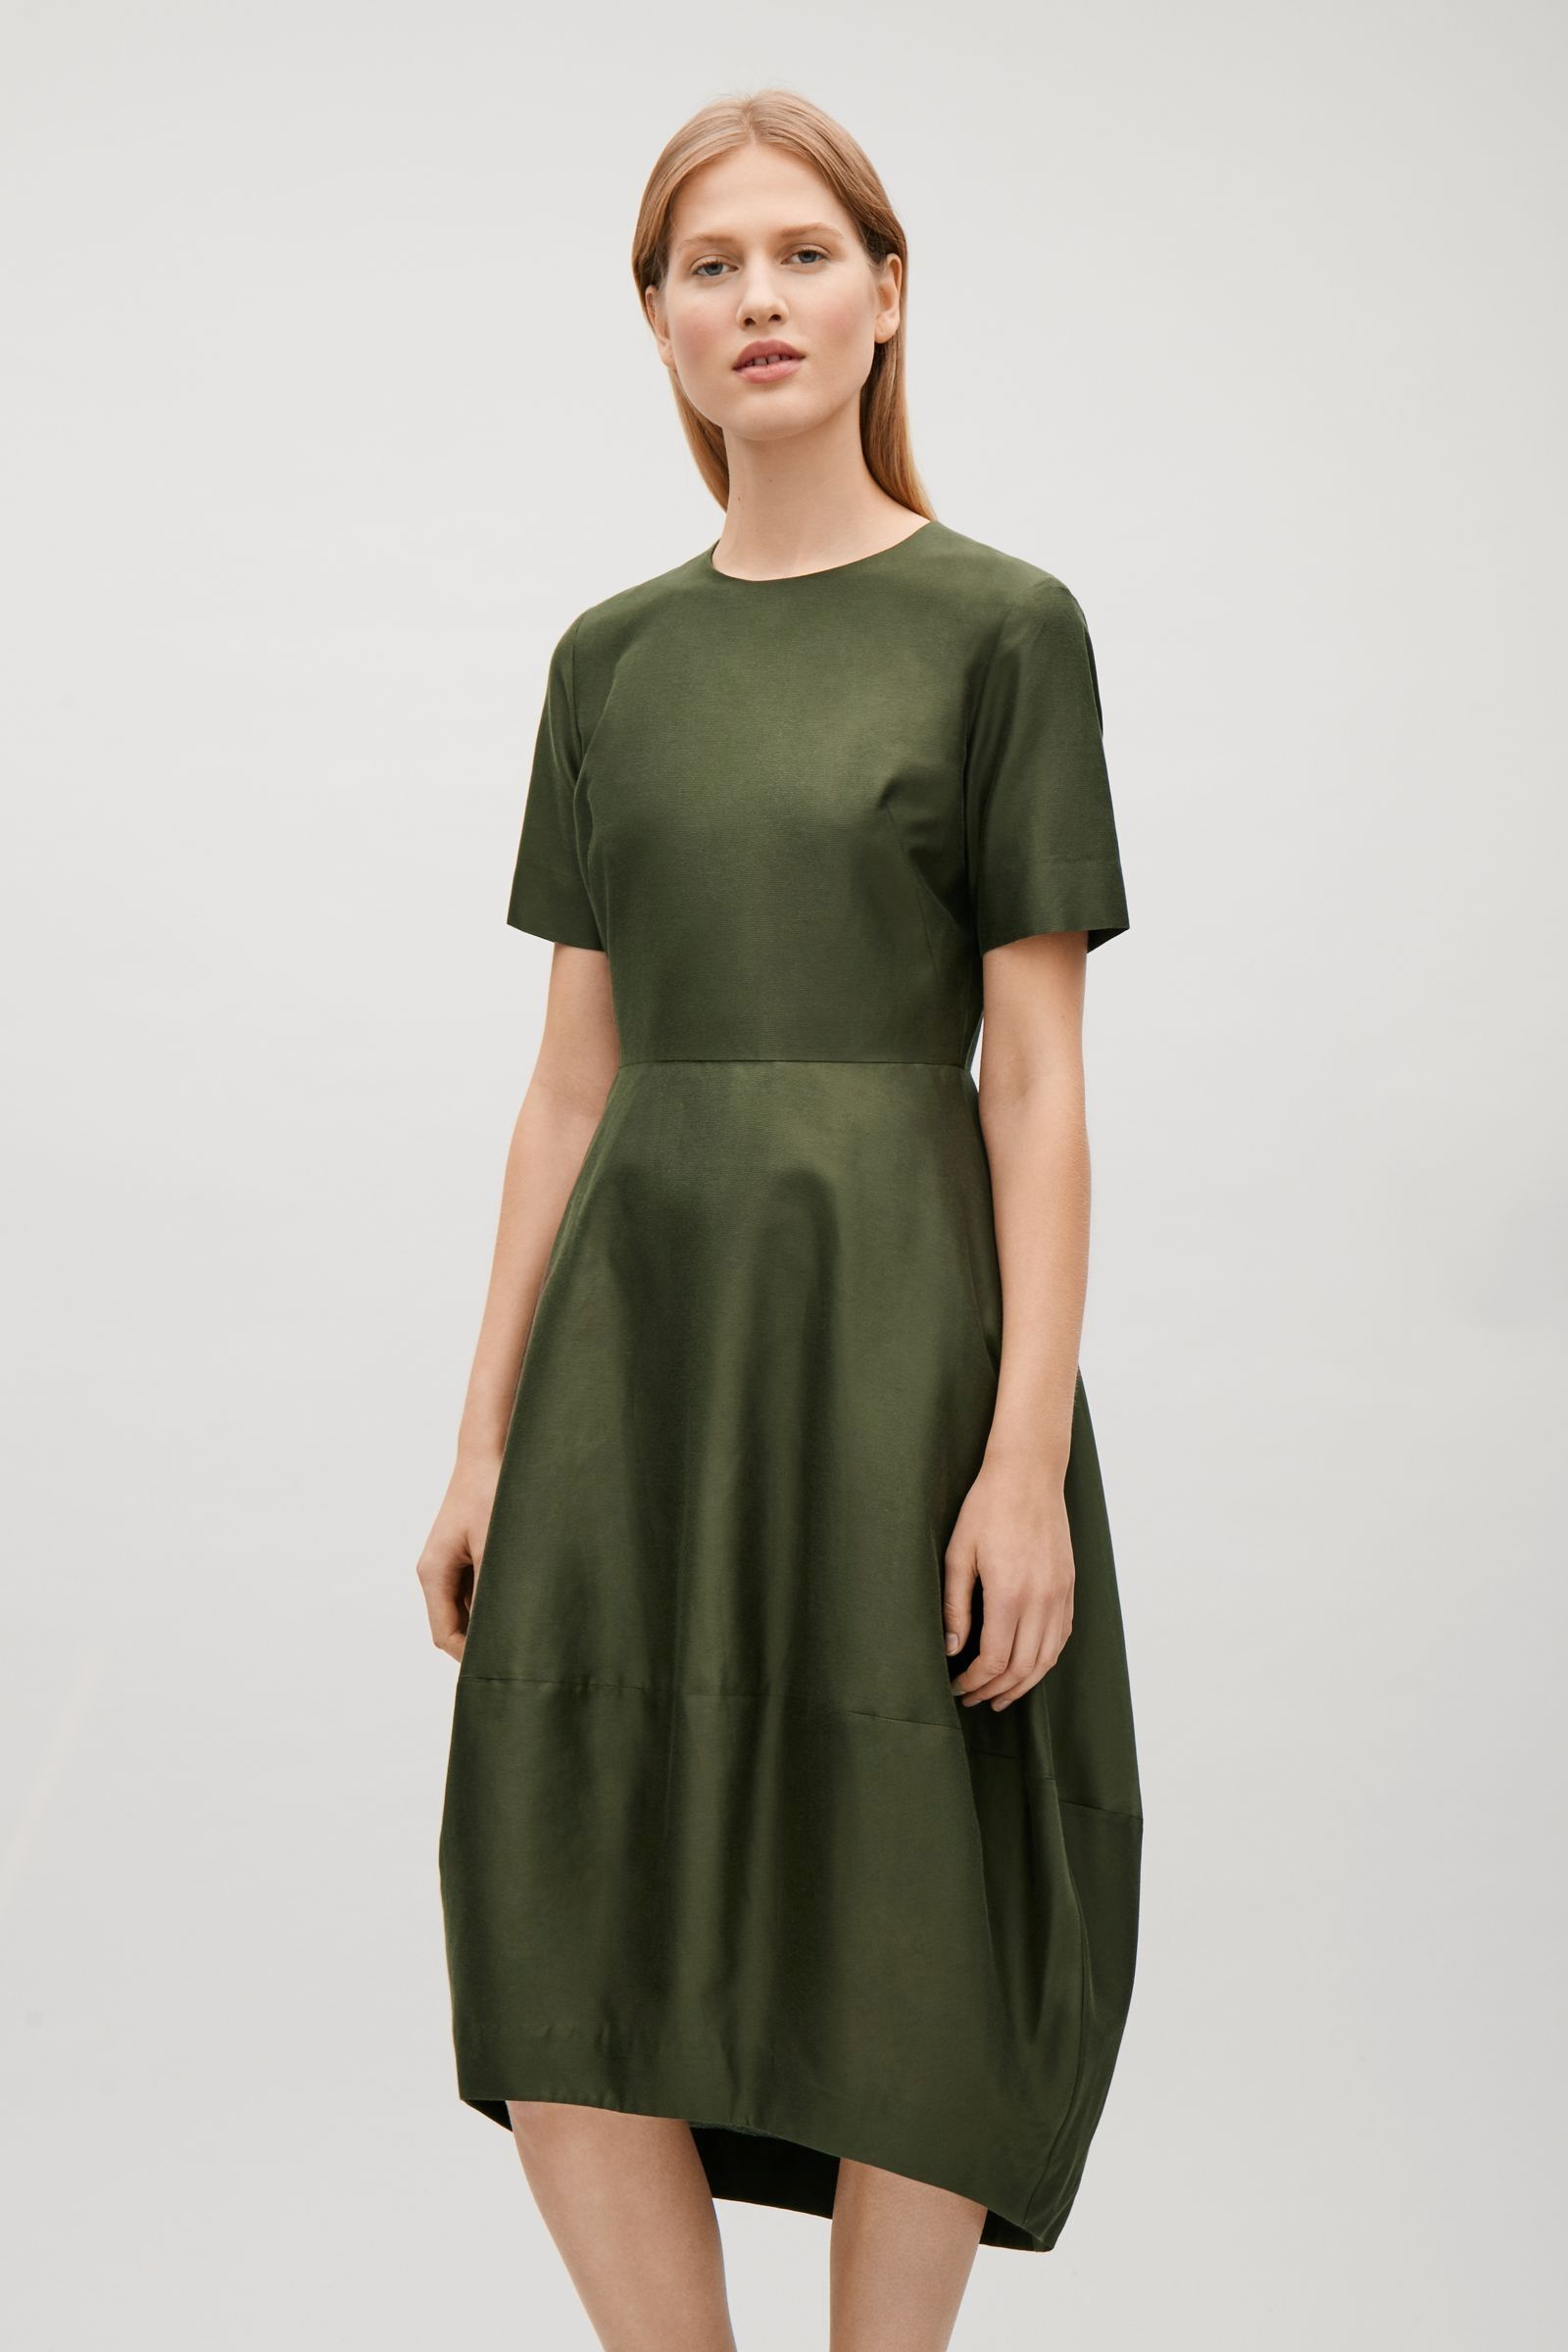 Cos green dress 2018  COS Dress with cocoon skirt in Olive Green  fits  Pinterest